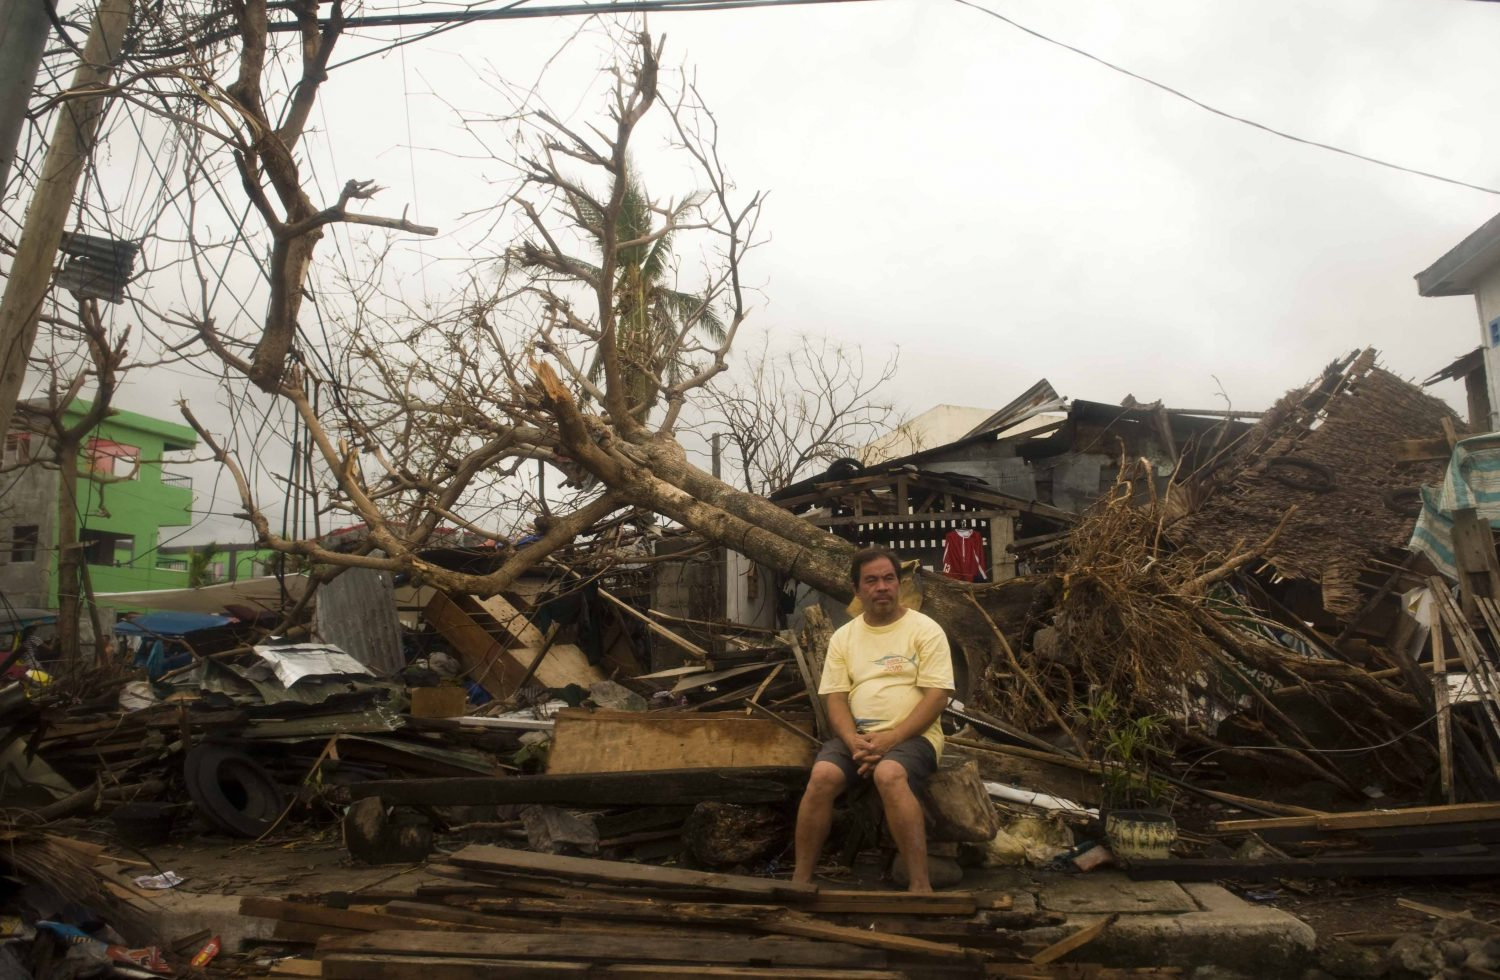 A+resident+sits+on+debris+in+typhoon-hit+Leyte+Province%2C+Nov.+12%2C+2013.+The+United+Nations+said+it+had+released+%2425+million+in+emergency+funds+to+pay+for+emergency+shelter+materials+and+household+items%2C+and+for+assistance+with+the+provision+of+emergency+health+services%2C+safe+water+supplies+and+sanitation+facilities.+It%27s+launching+an+appeal+for+more+aid.+%28Lui+Siu+Wai%2FXinhua%2FZuma+Press%2FMCT%29